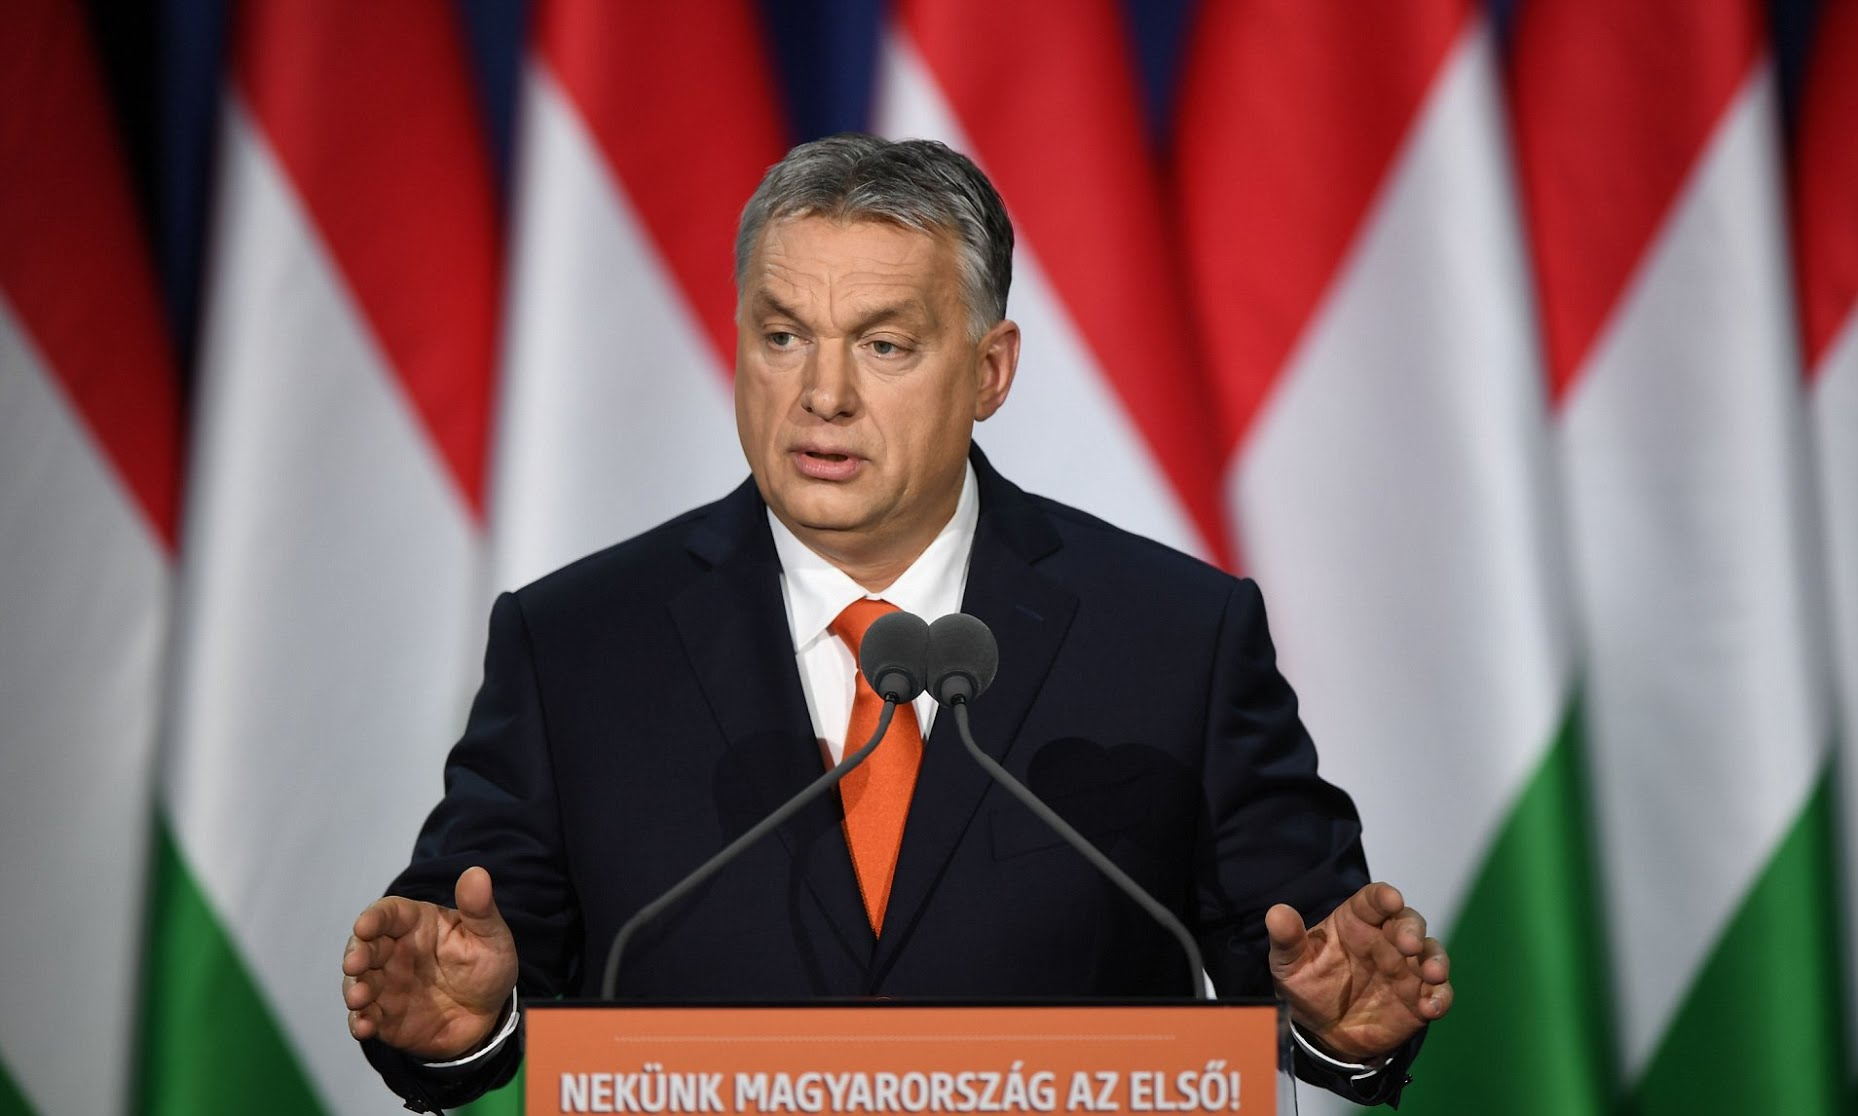 'Christianity is Europe's last hope' says Hungary's nationalist Prime Minister as he calls for renewed crackdown on extremism.